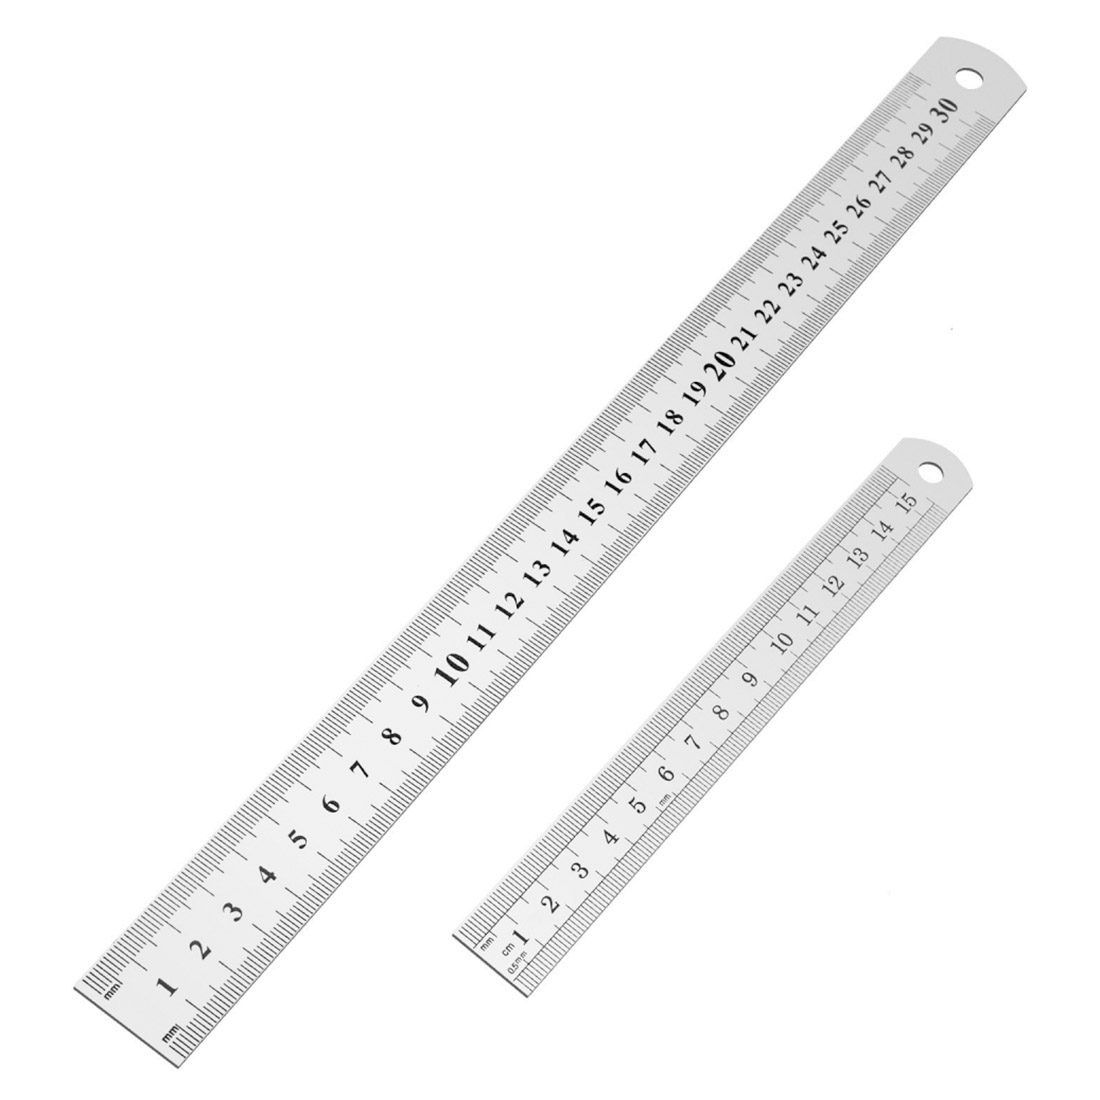 Affordable Wholesales 10 Sets Stainless Steel Ruler 12 Inch + 6 Inch Metal Rulers